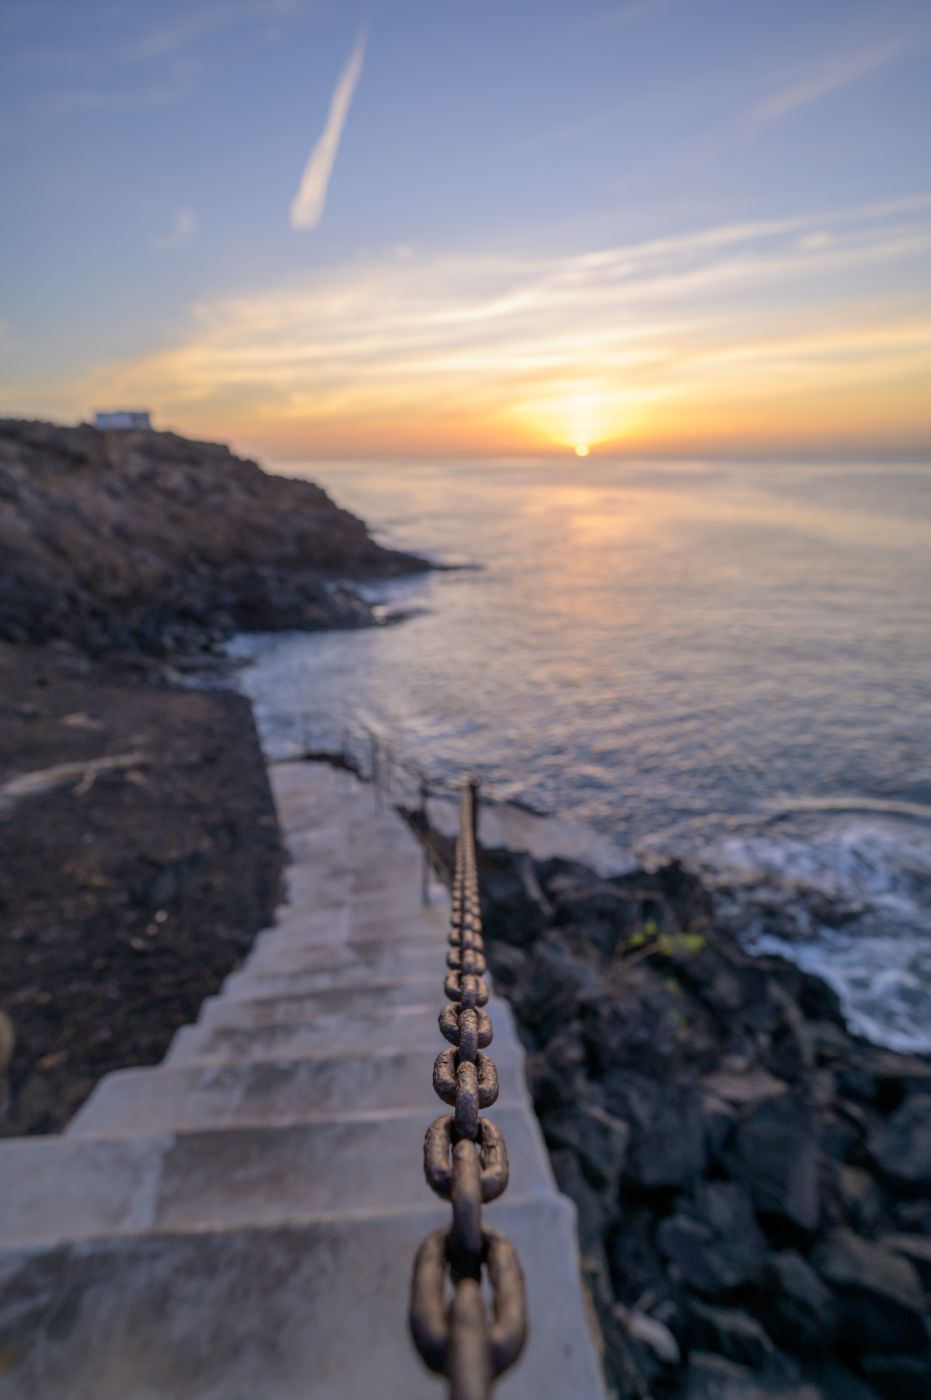 Stairway to nowhere, Spain